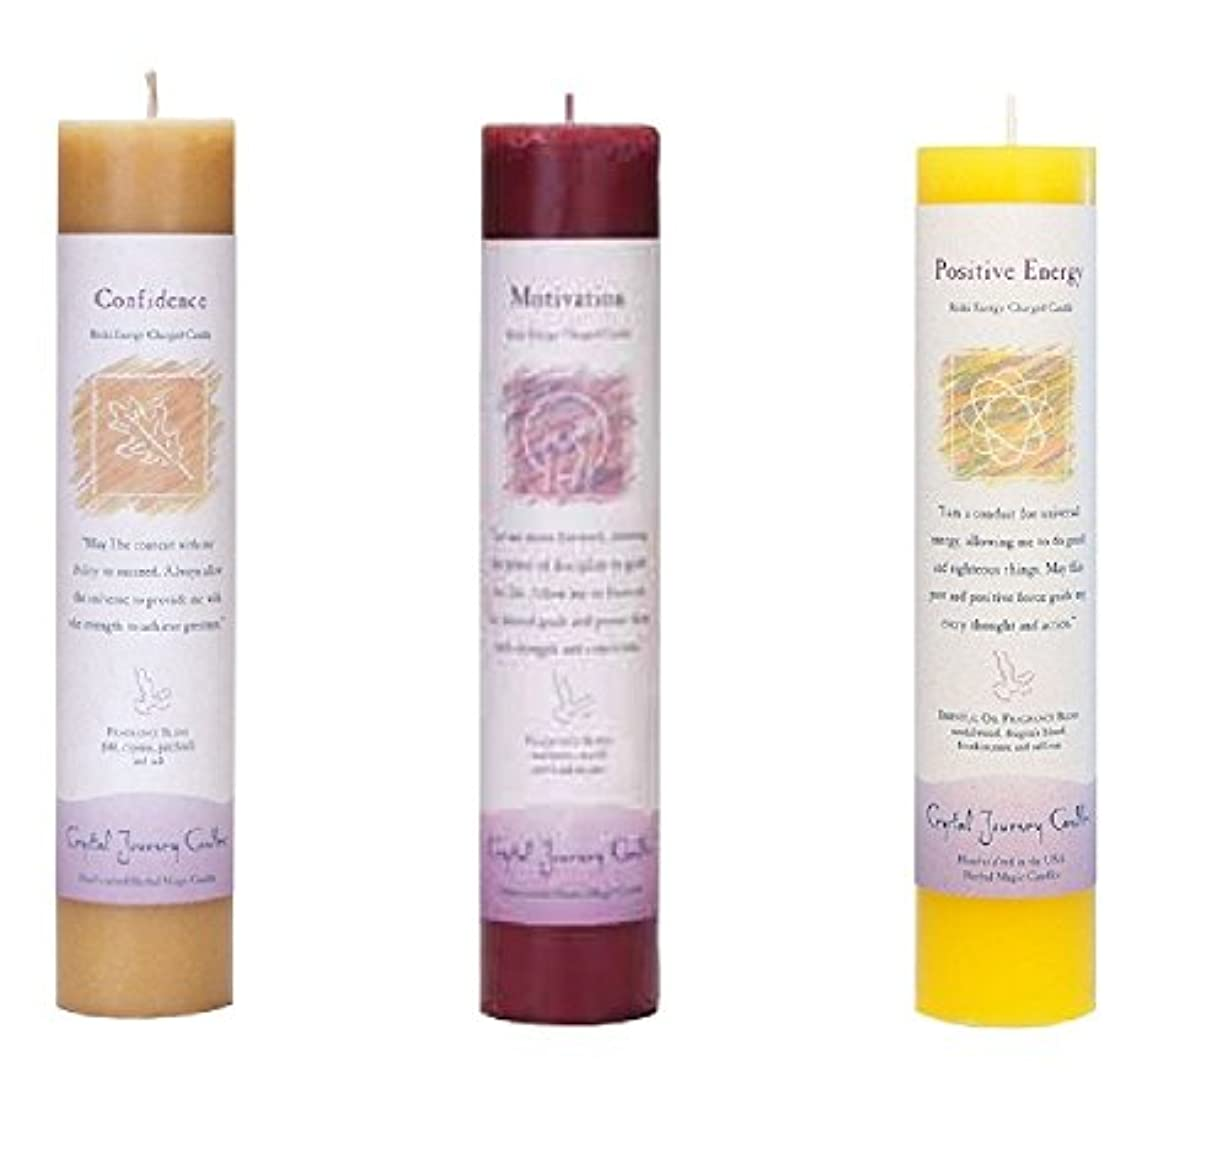 軽蔑シットコムモットー(Confidence, motivation, positive energy) - Crystal Journey Reiki Charged Herbal Magic Pillar Candle Bundle (Confidence...